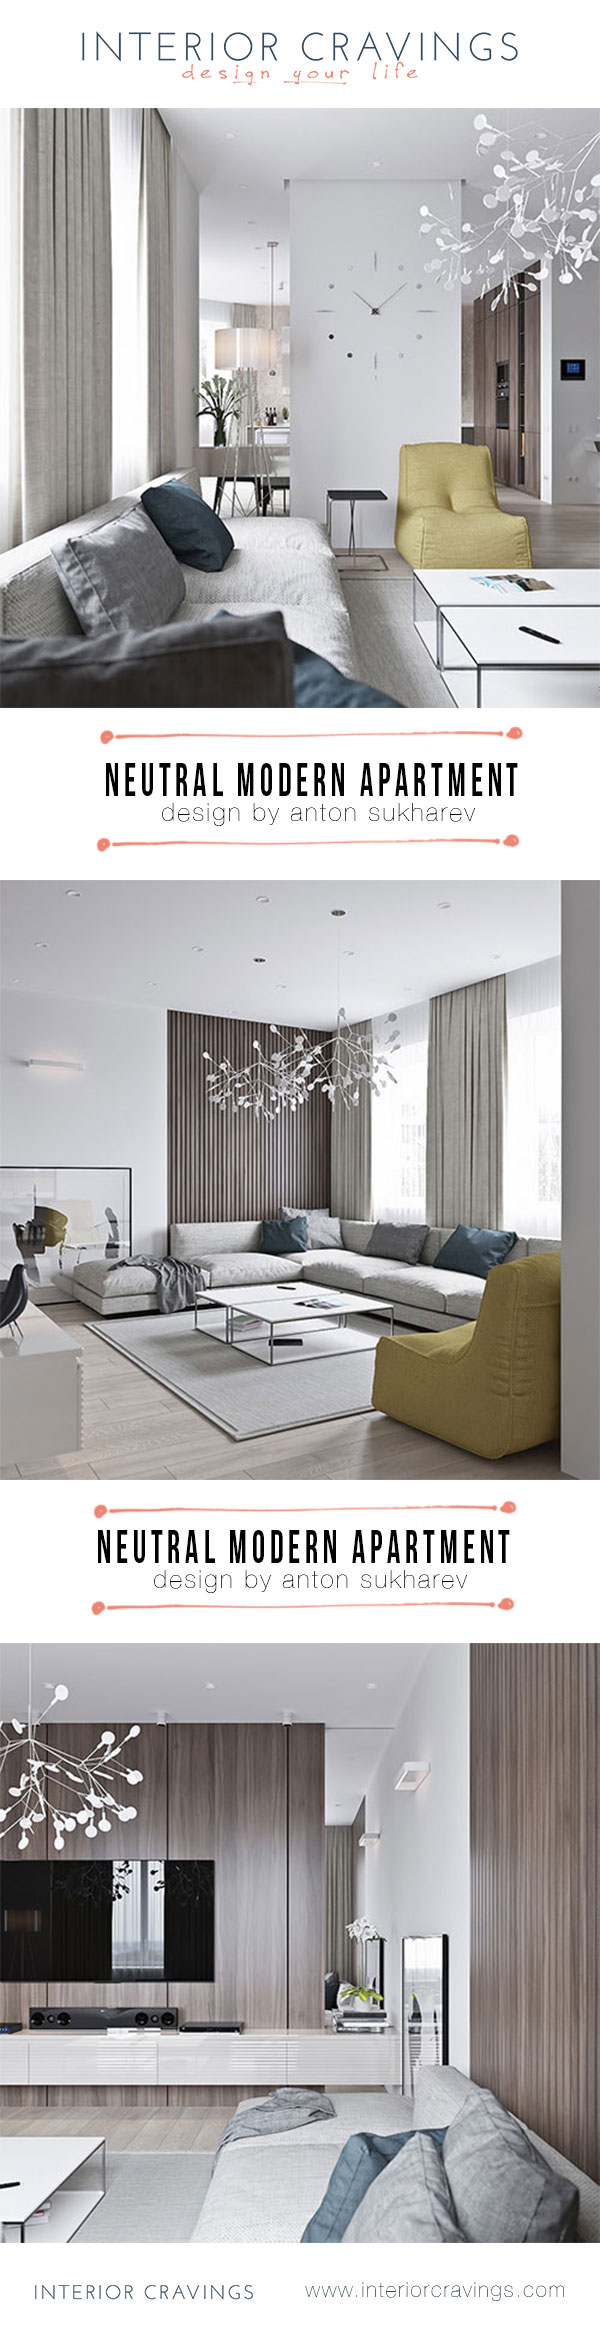 interior cravings neutral modern apartment living room by anton sukharev interior design